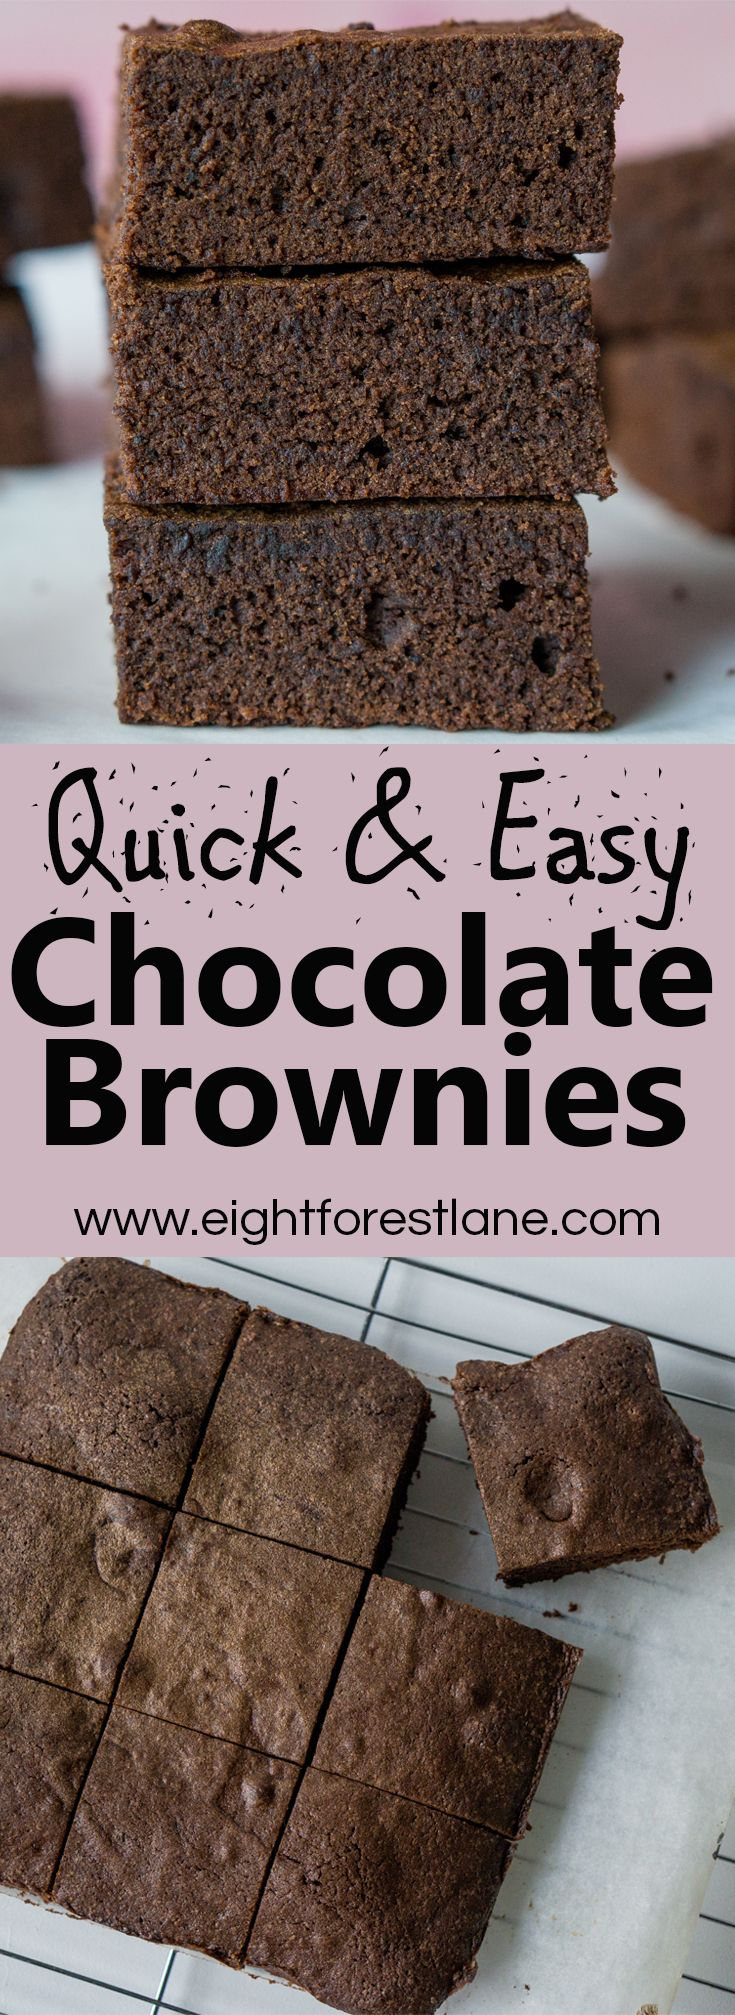 Quick & Easy Chocolate Brownies